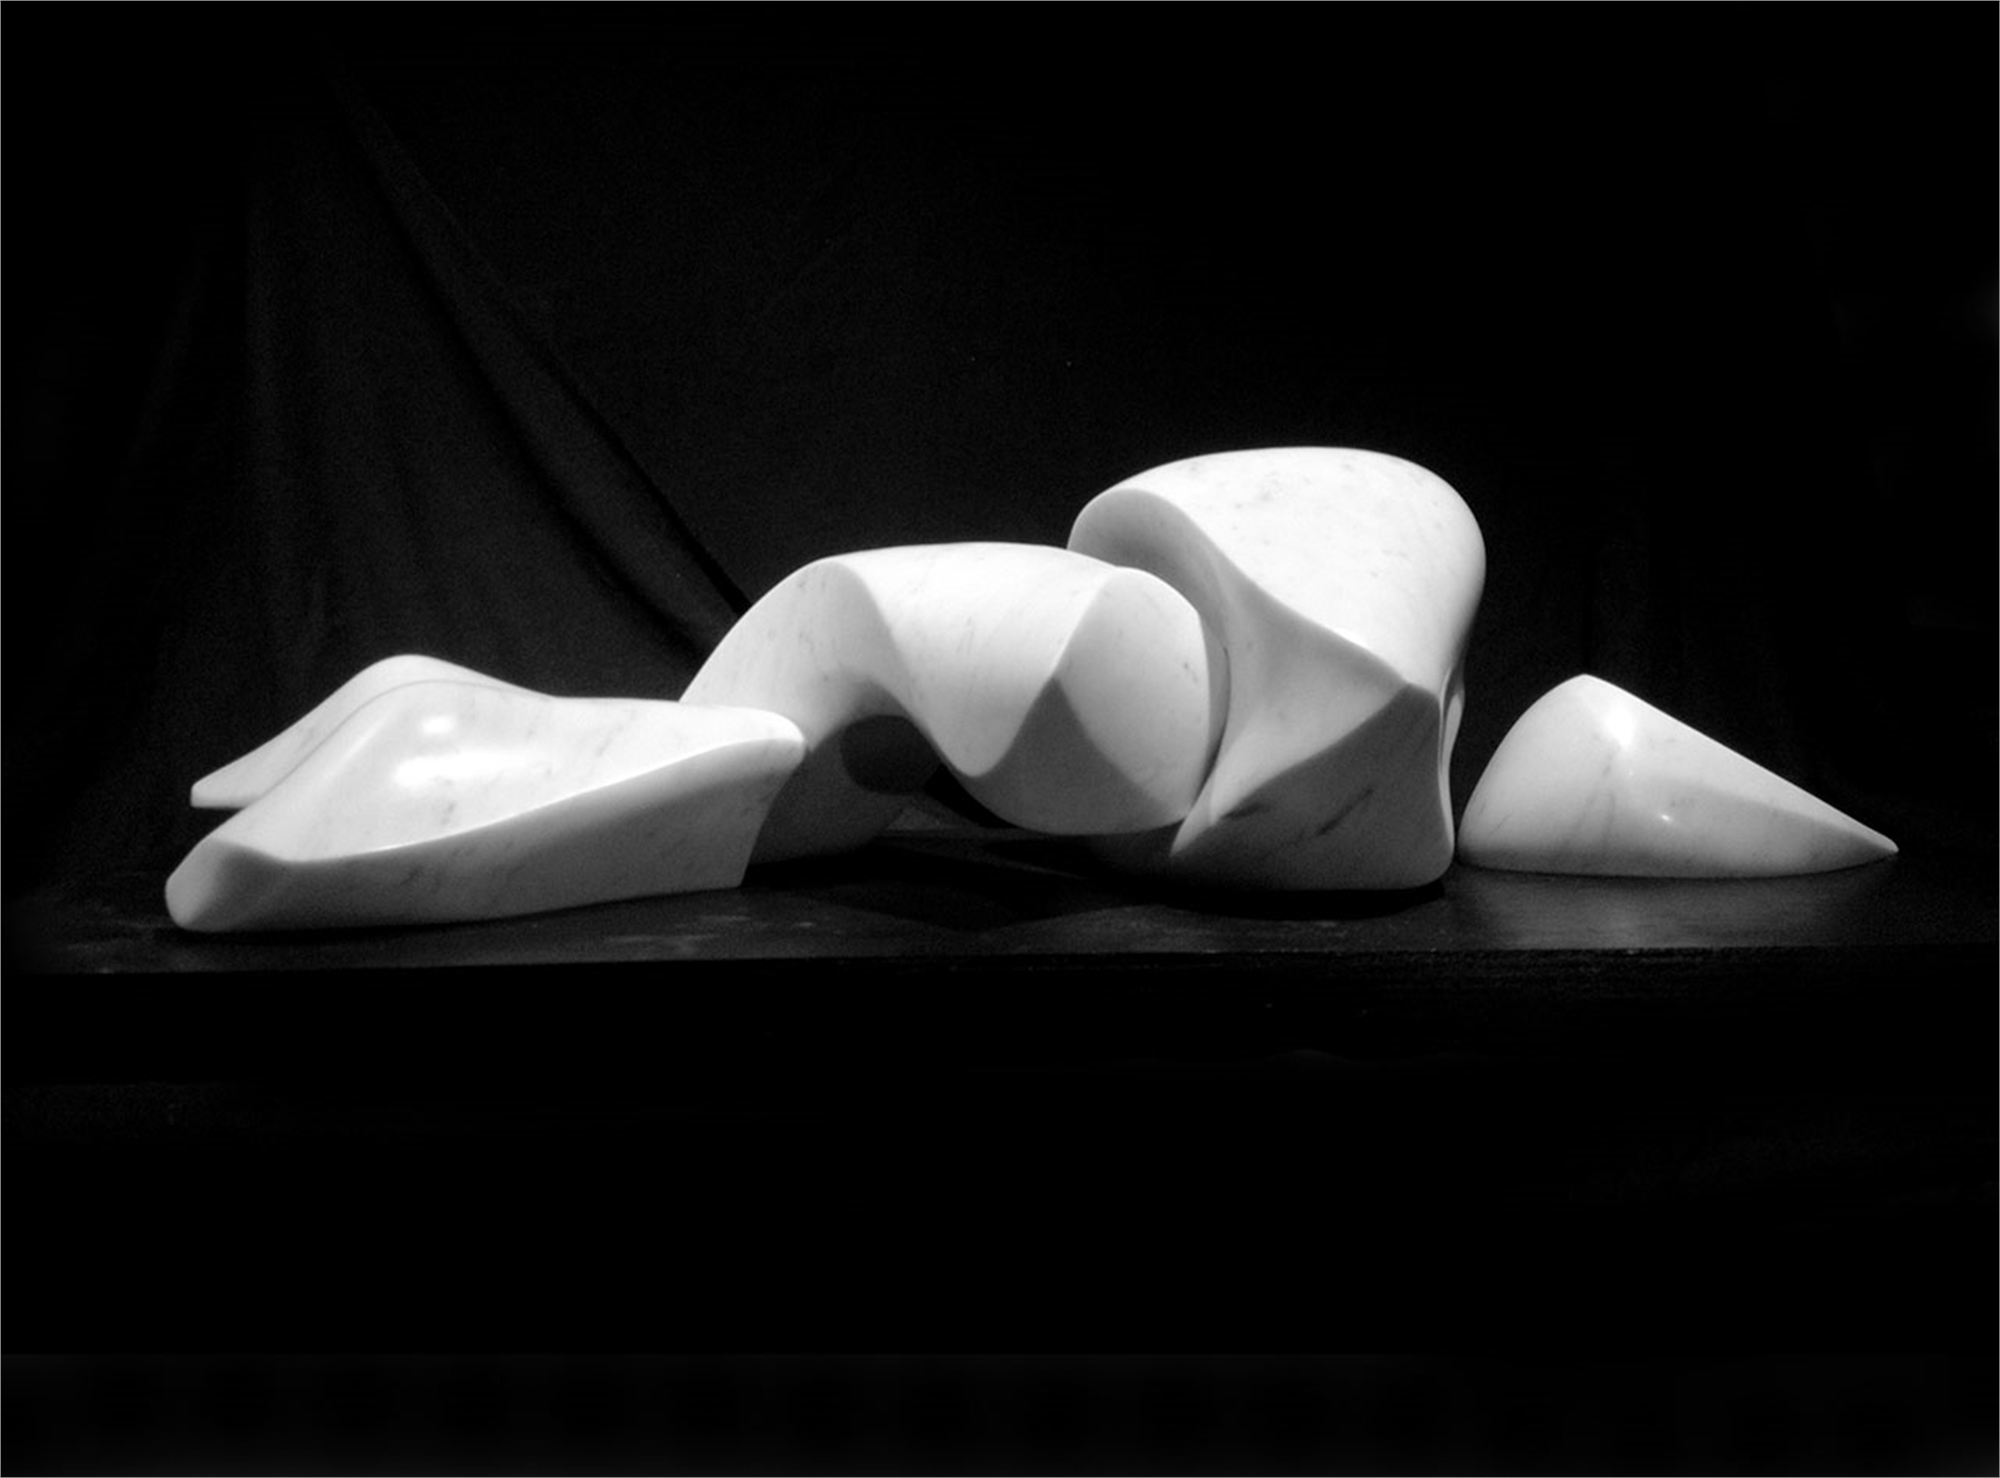 Reclining Twist in Four Pieces by Steven Lustig